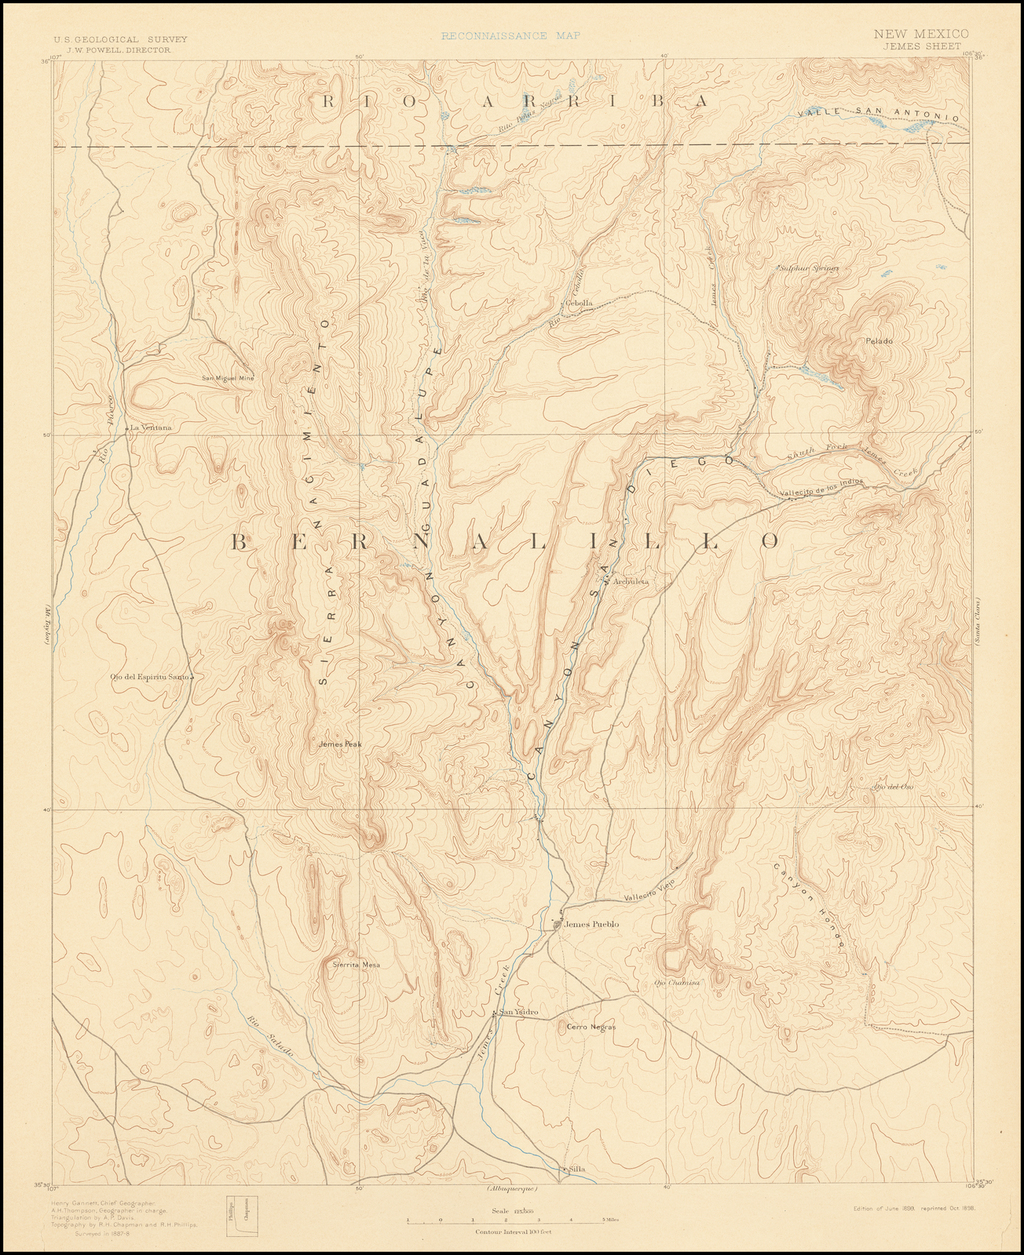 Reconnaissance Map - New Mexico Jemes Sheet By U.S. Geological Survey